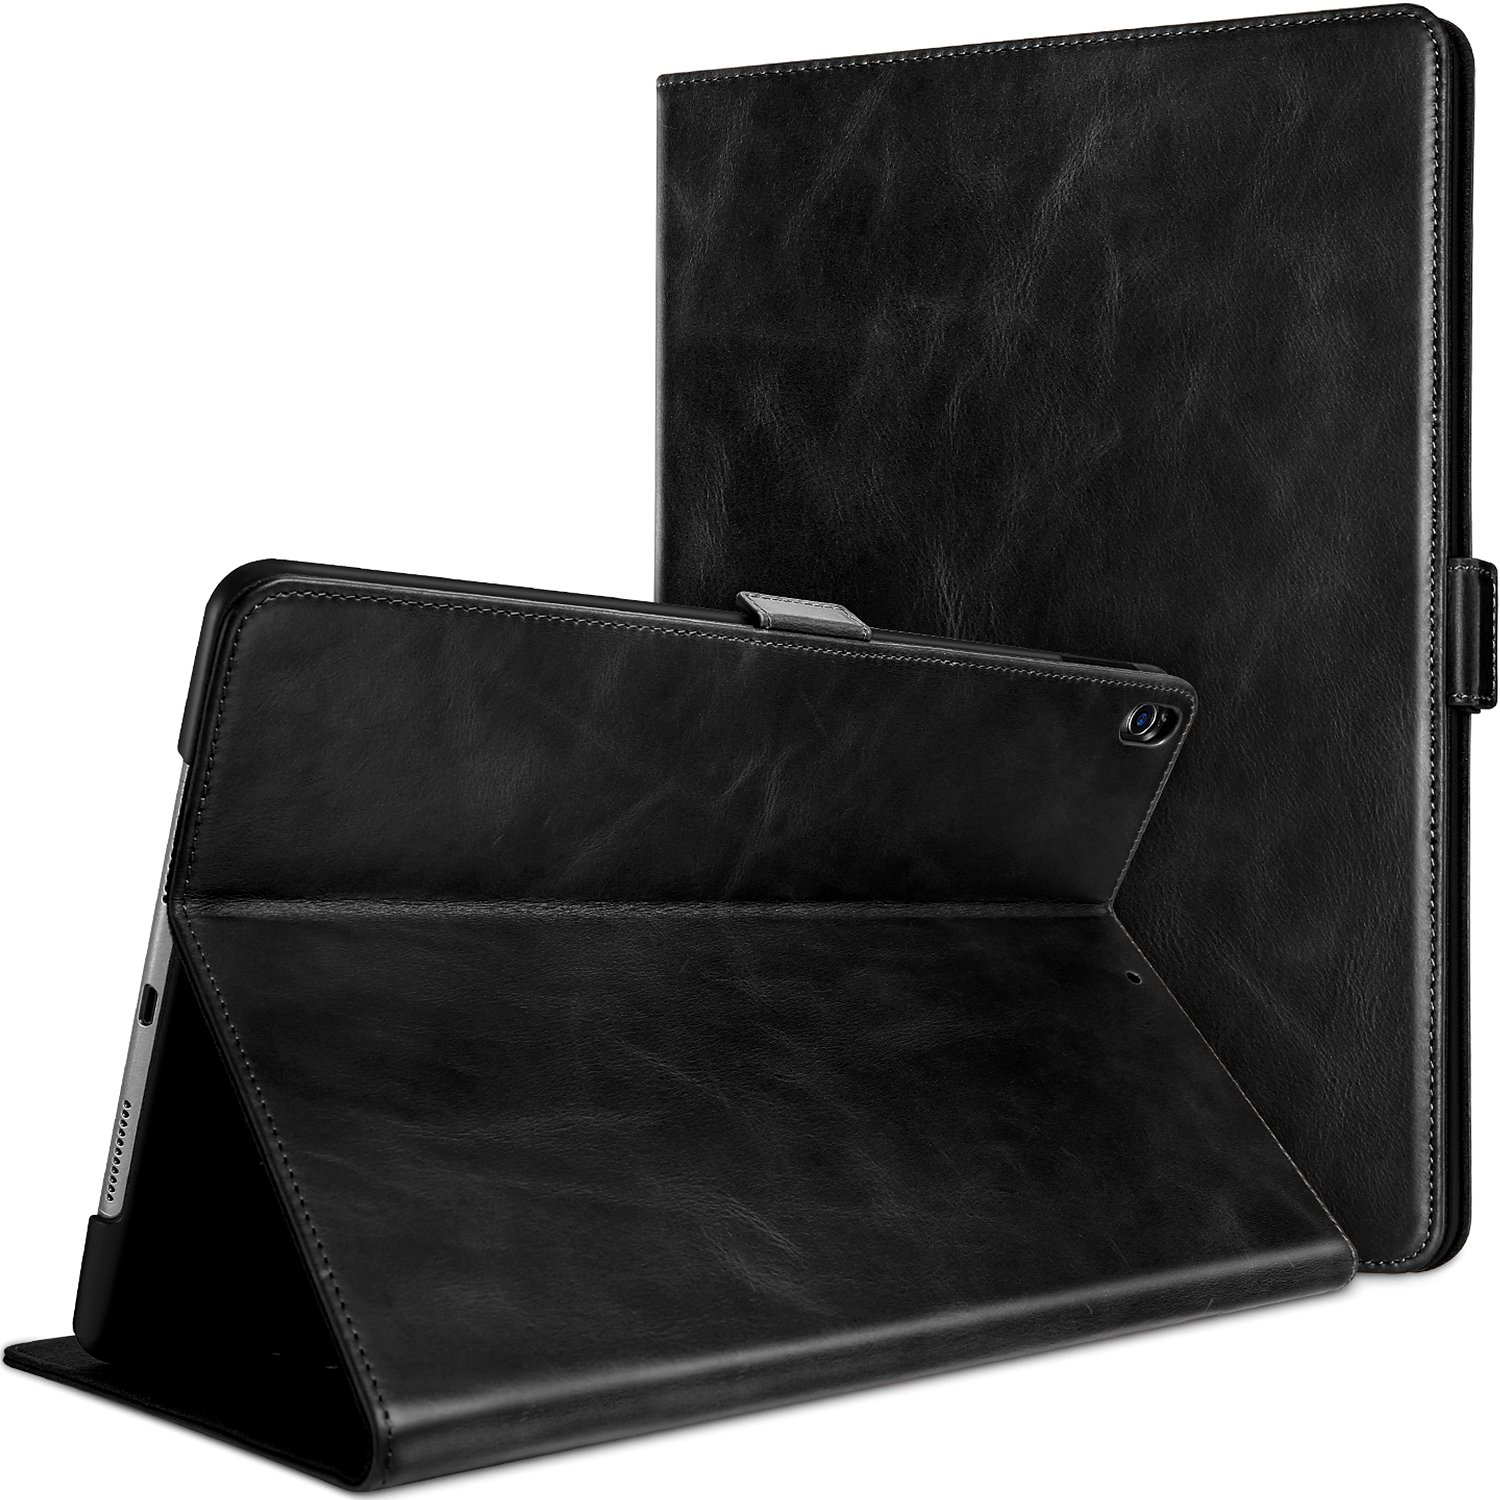 ProCase iPad Air (3rd Gen) 10.5 2019 / iPad Pro 10.5 2017 Case, Vintage Genuine Leather Case Slim Fit Stand Folio Cover, with Multiple Viewing Angles, Auto Sleep/Wake Feature –Black